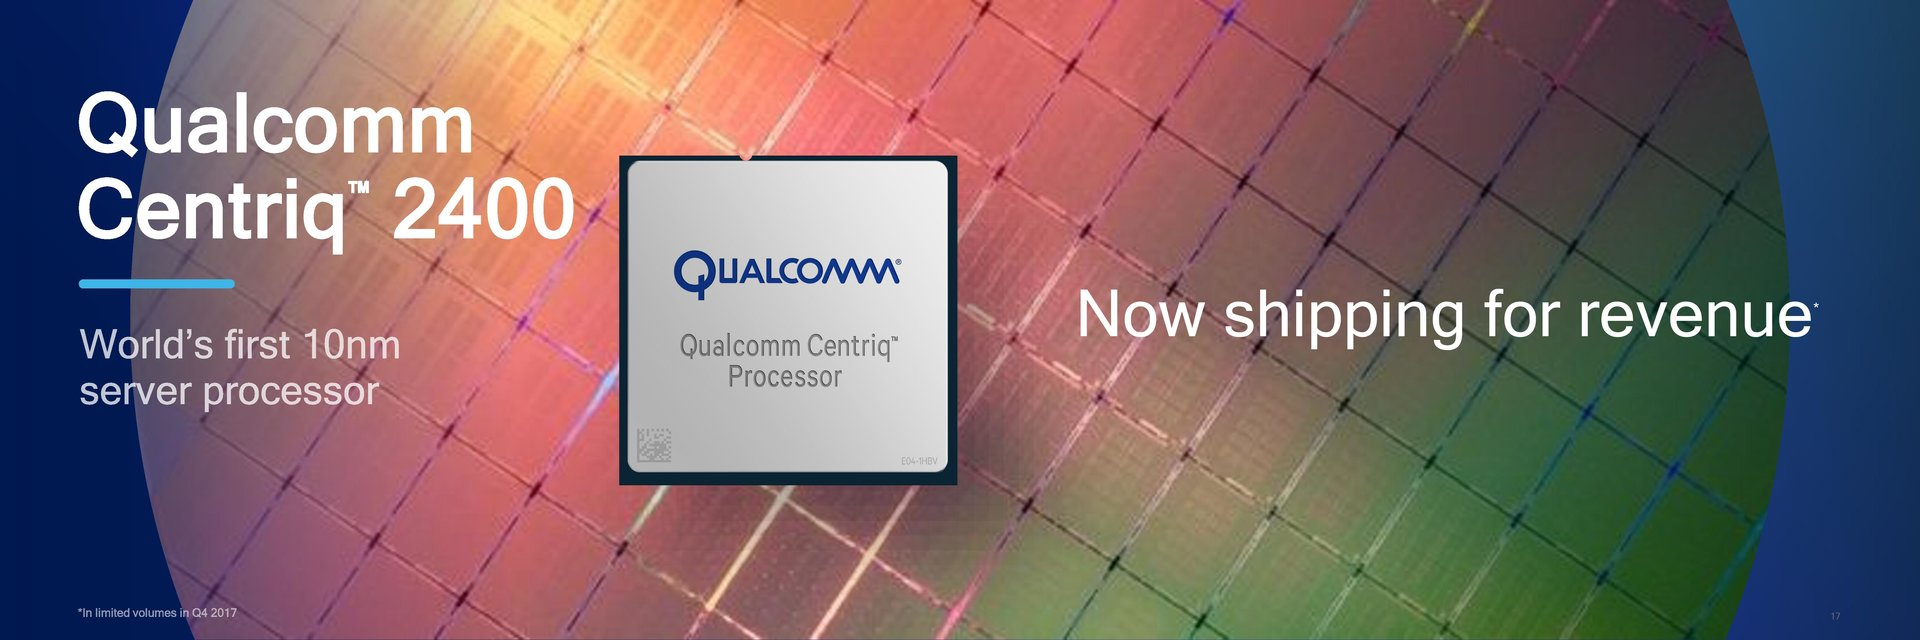 Qualcomm Centriq 2400 im Detail